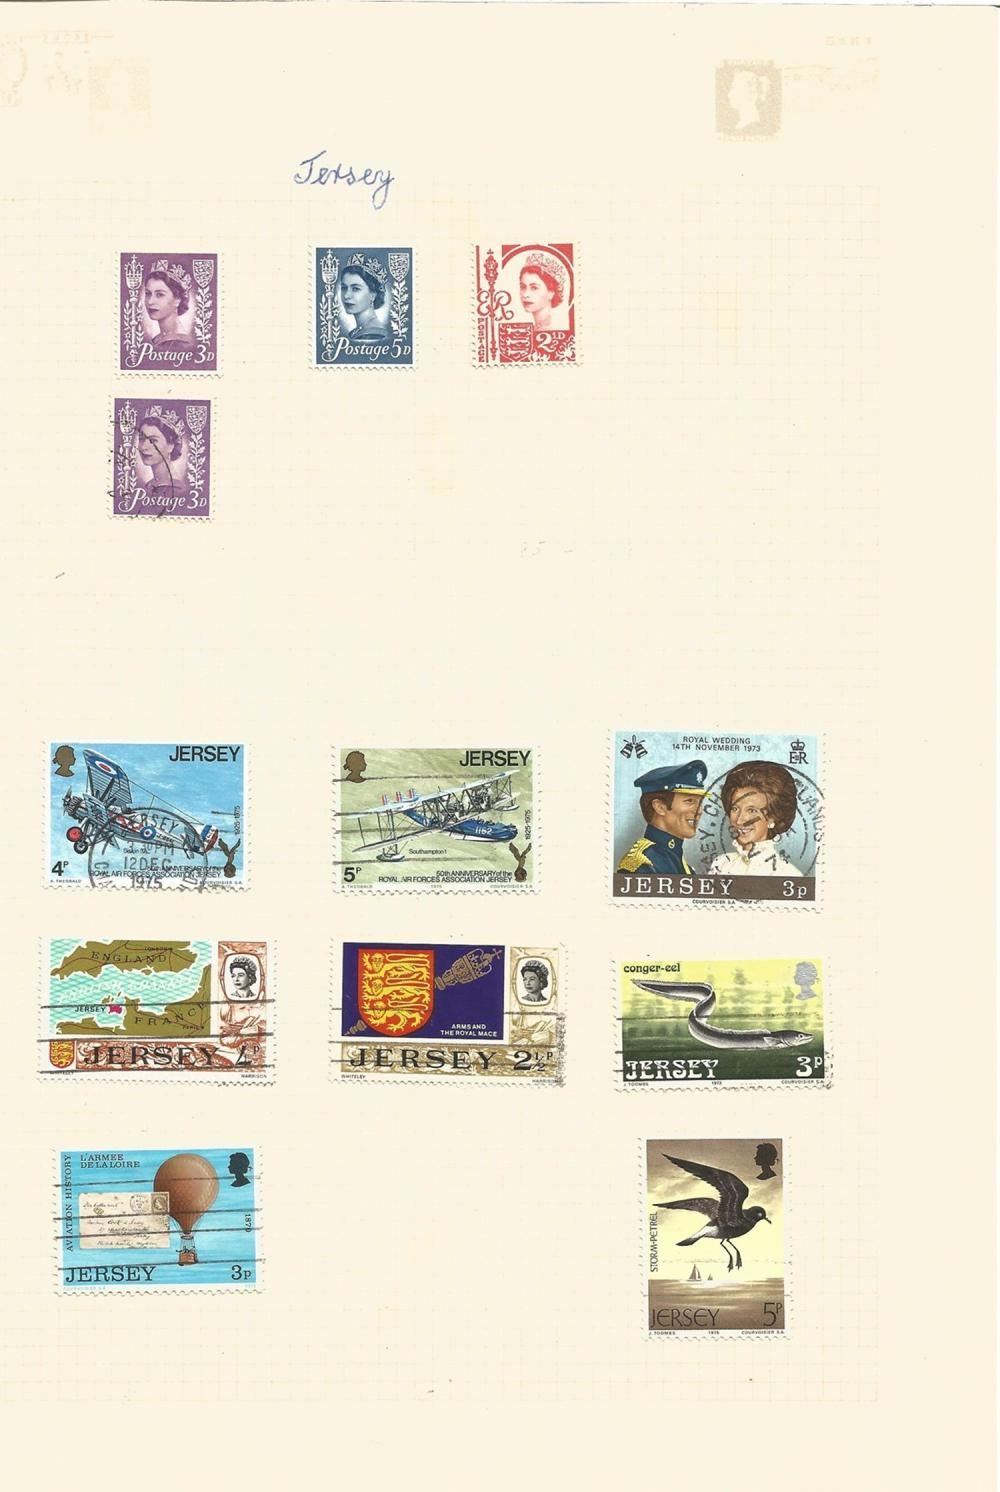 Jersey, Guernsey, Isle of Man, Scotland, Wales, Northern Island, stamps on loose sheets, approx. 65.